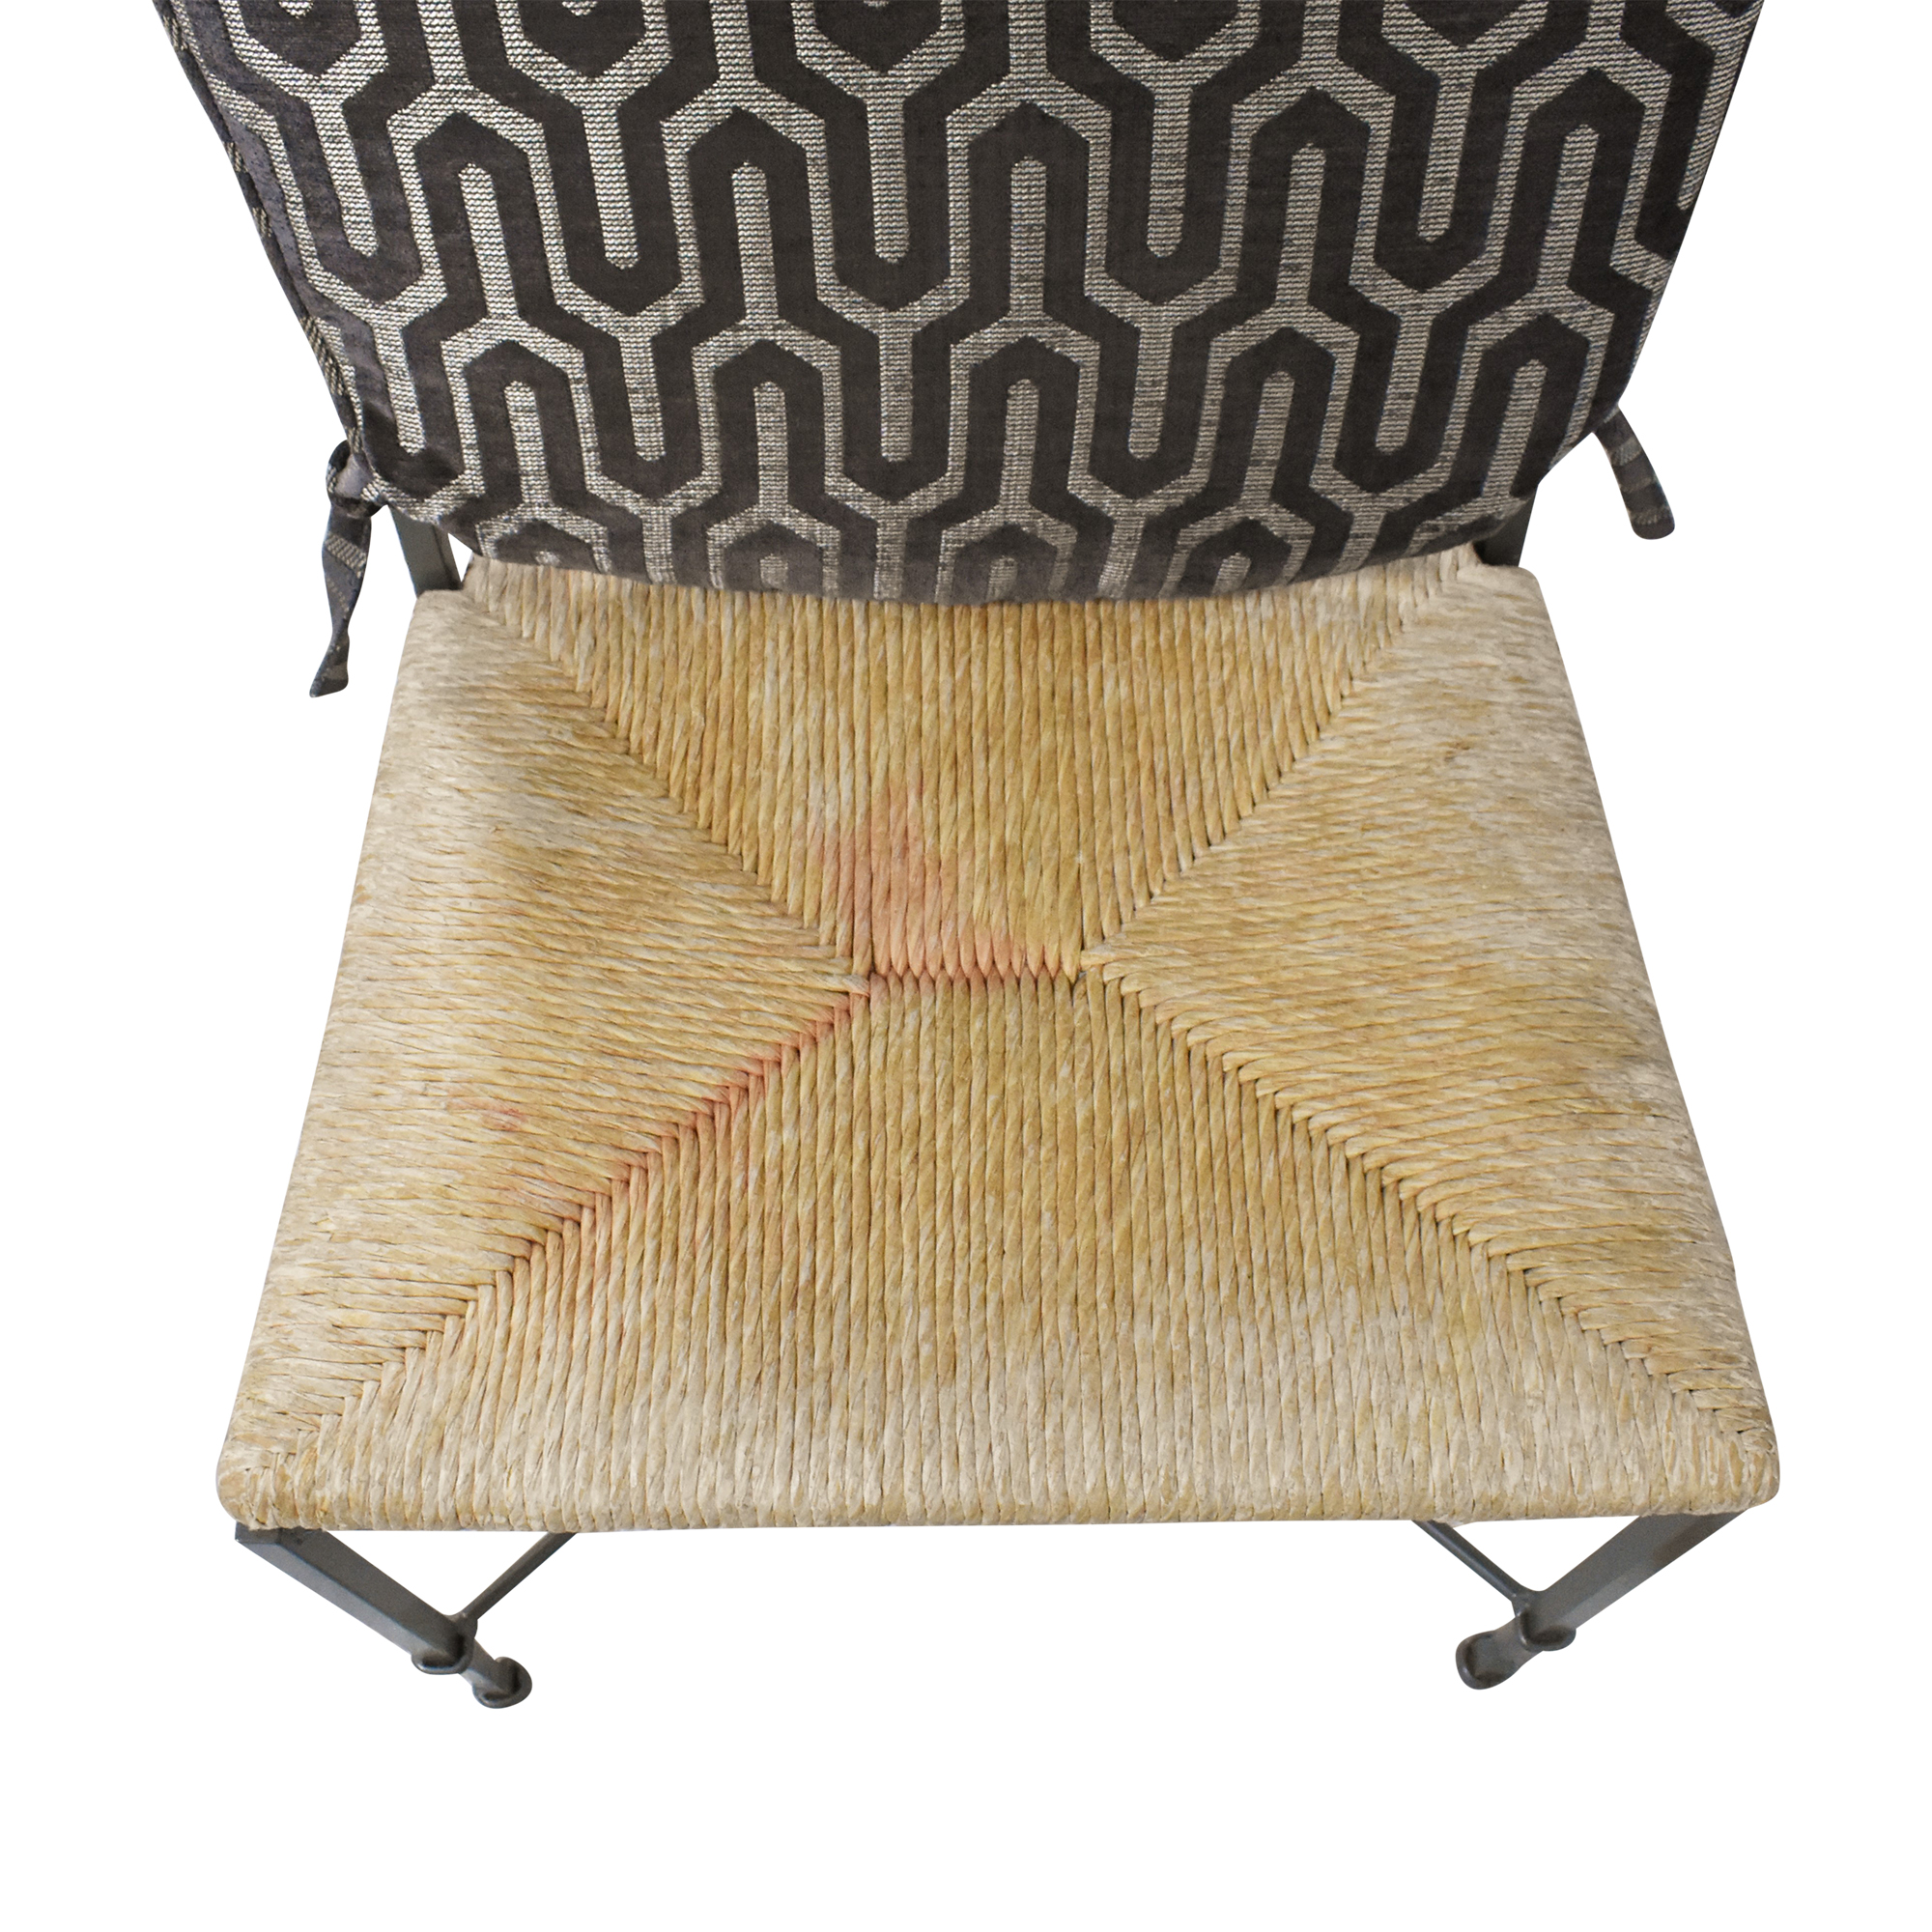 Charleston Forge Woven Seat Dining Chairs with Cushions Charleston Forge